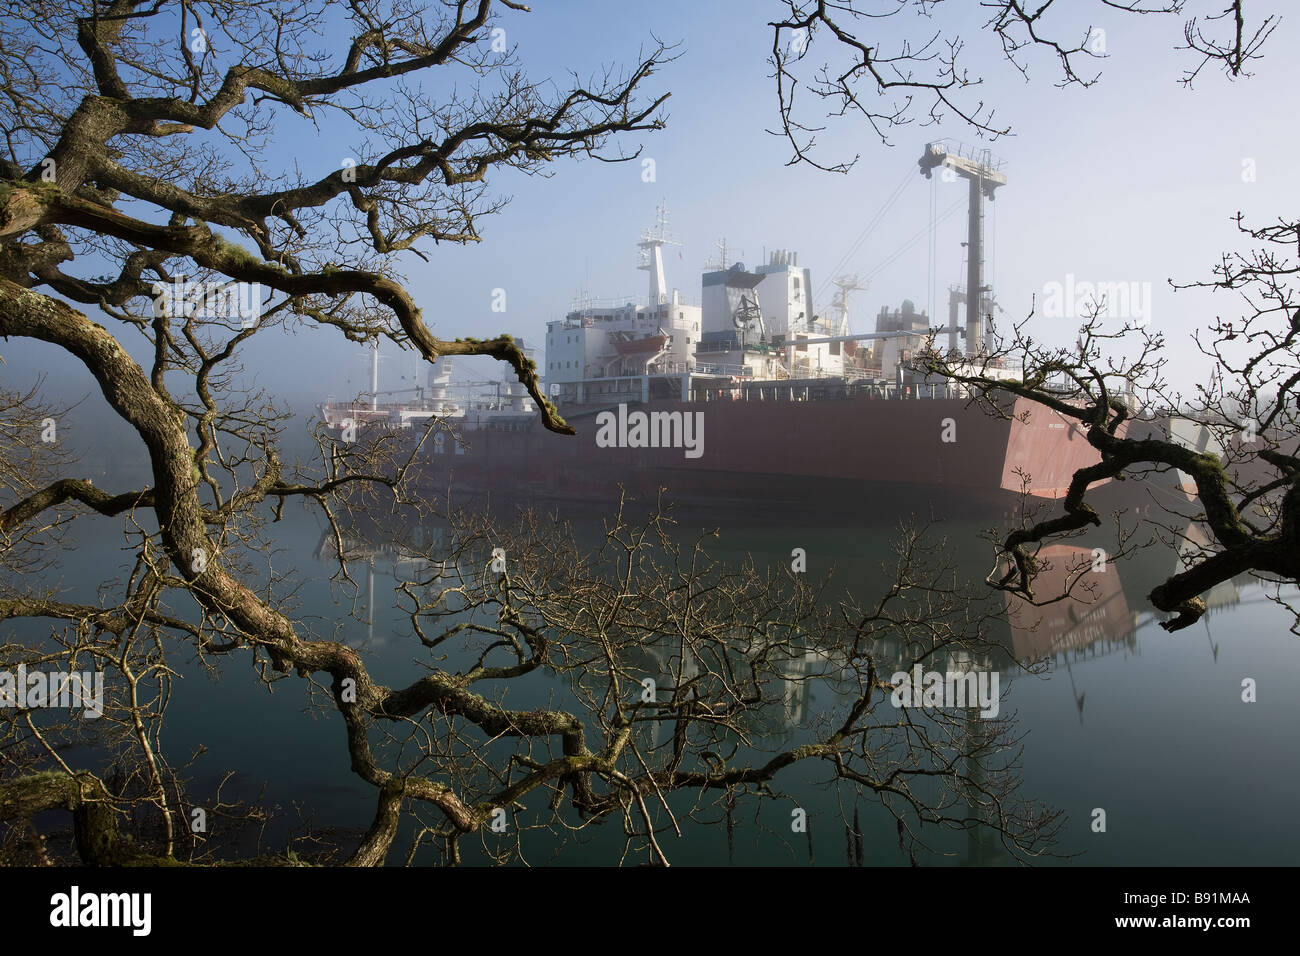 Ship laid up on the river Fal in Cornwall during the global economic downturn in the mist - Stock Image